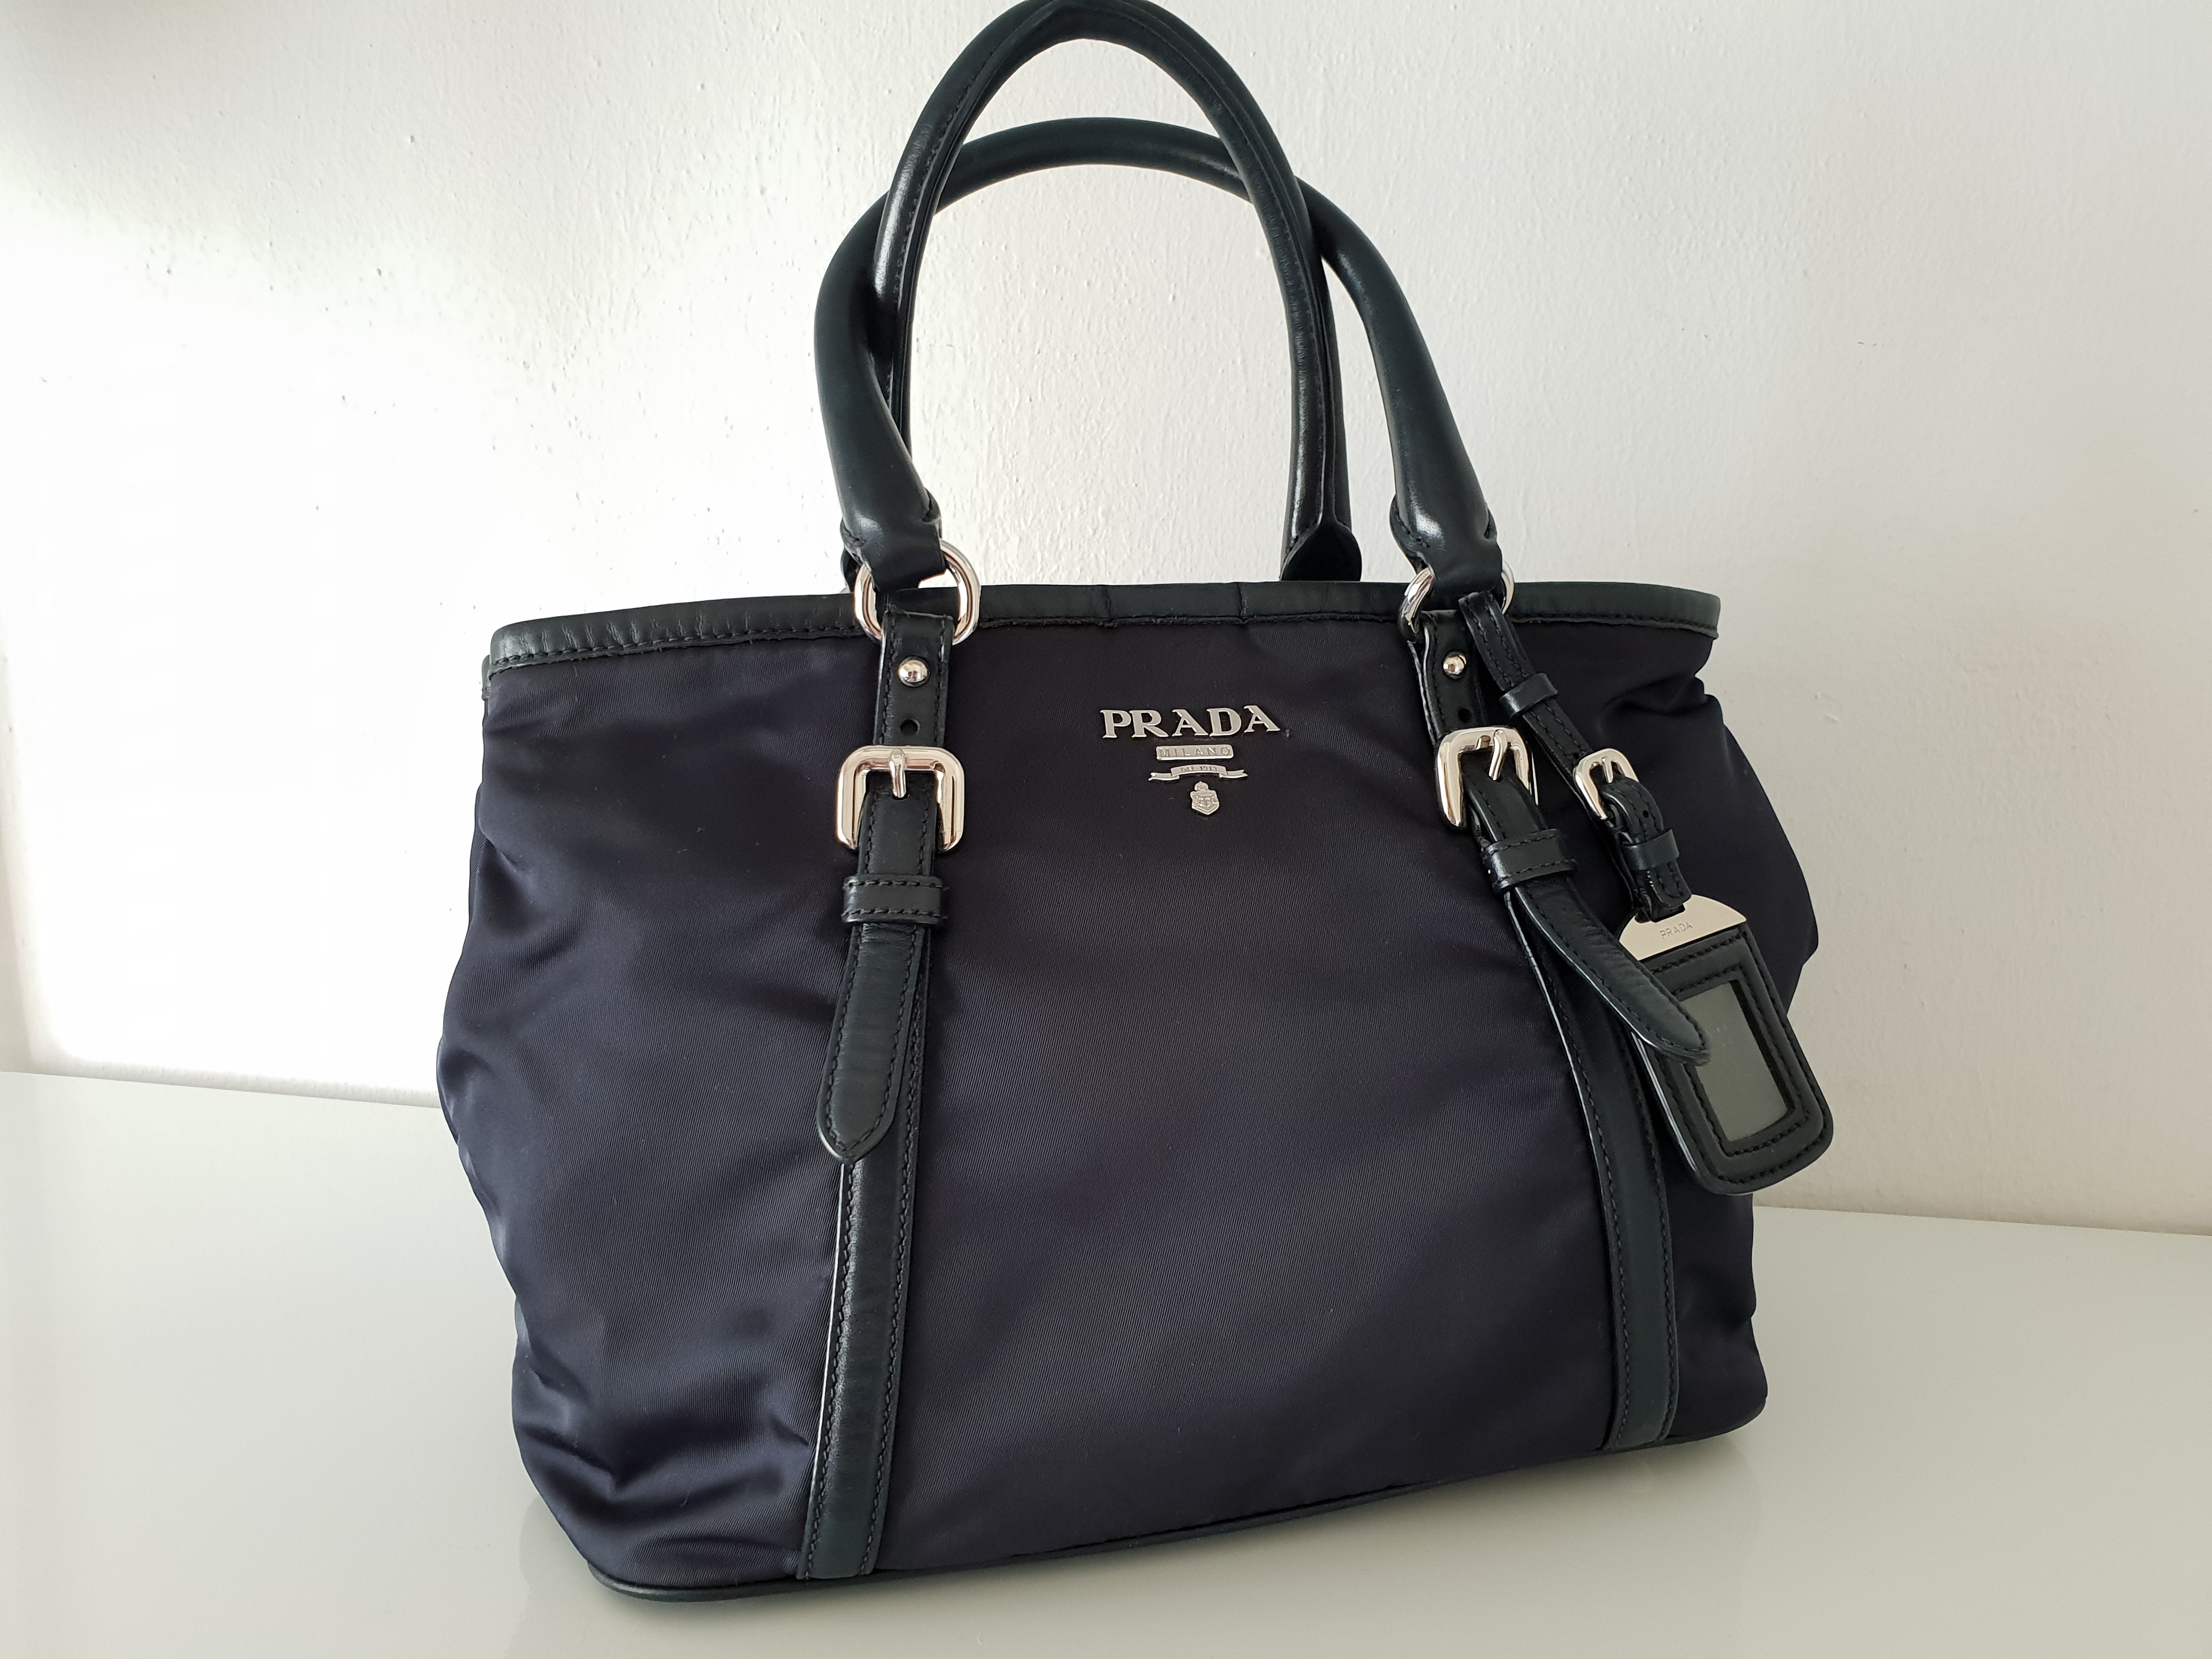 Prada BN 1841 in Silver Hardware Condition   8.5 10 Pre-Loved with good  condition! Come with Bag  b2c3bca748ca3